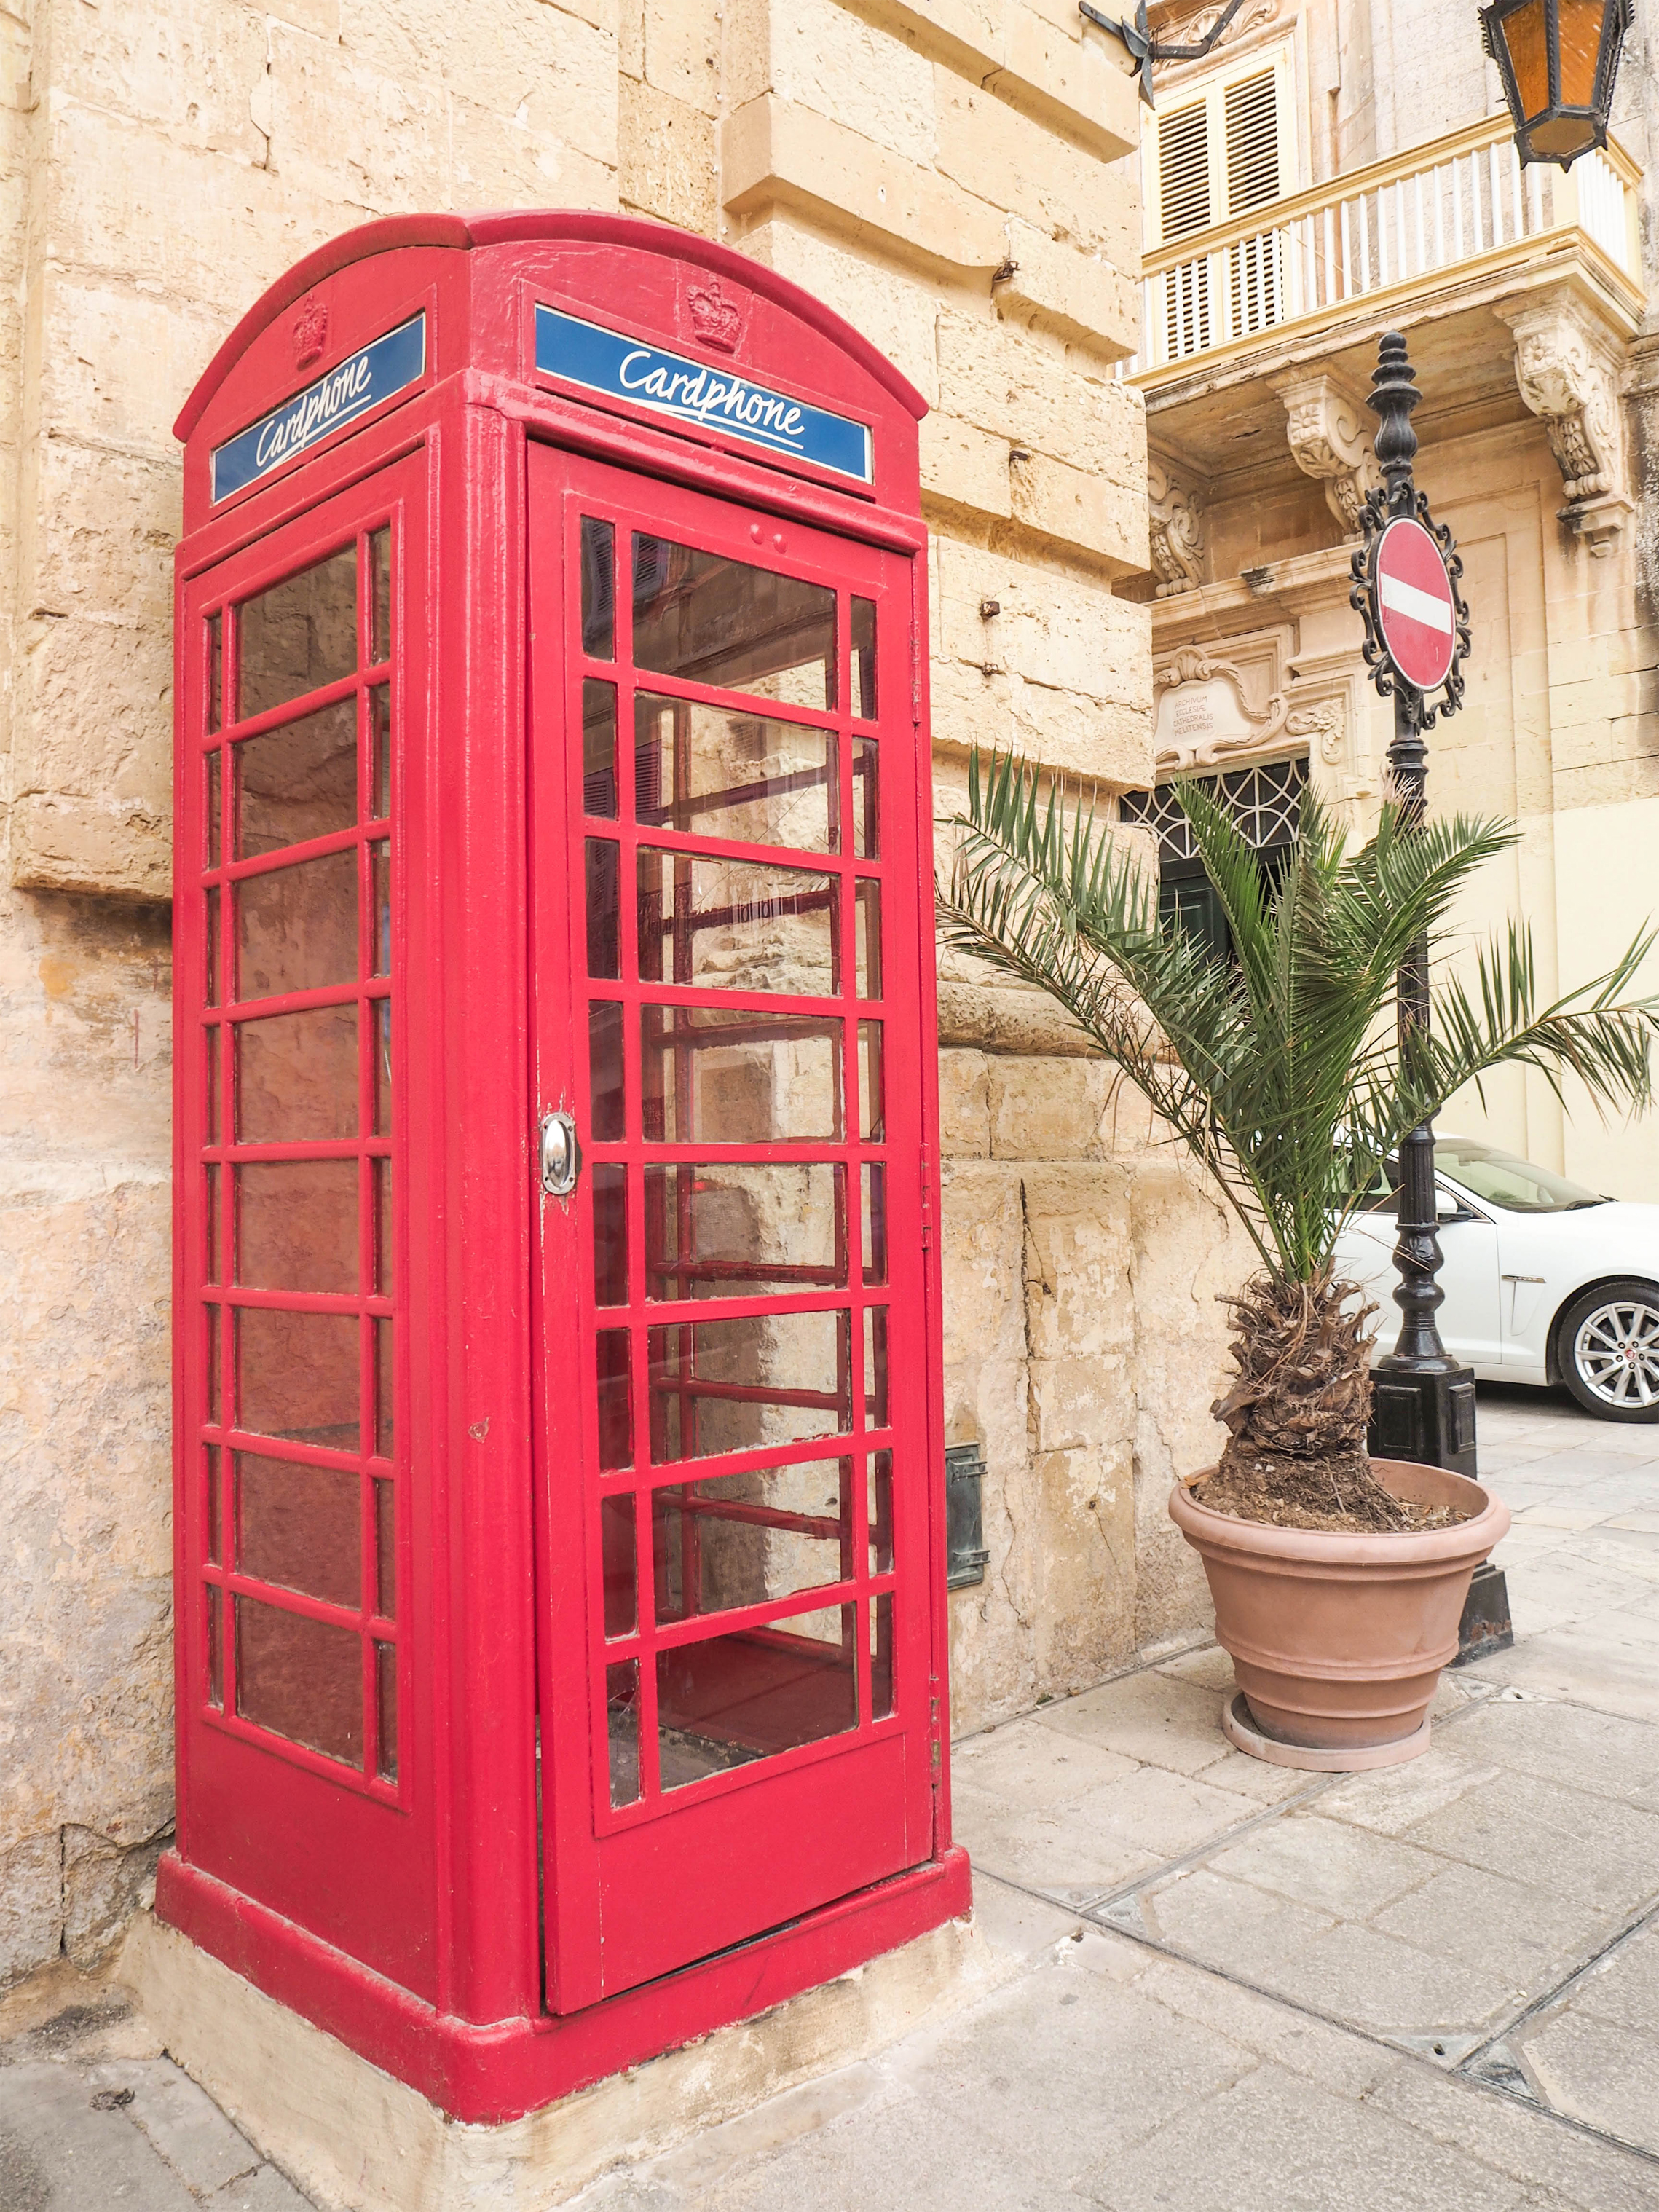 British Phone Booth, Malta